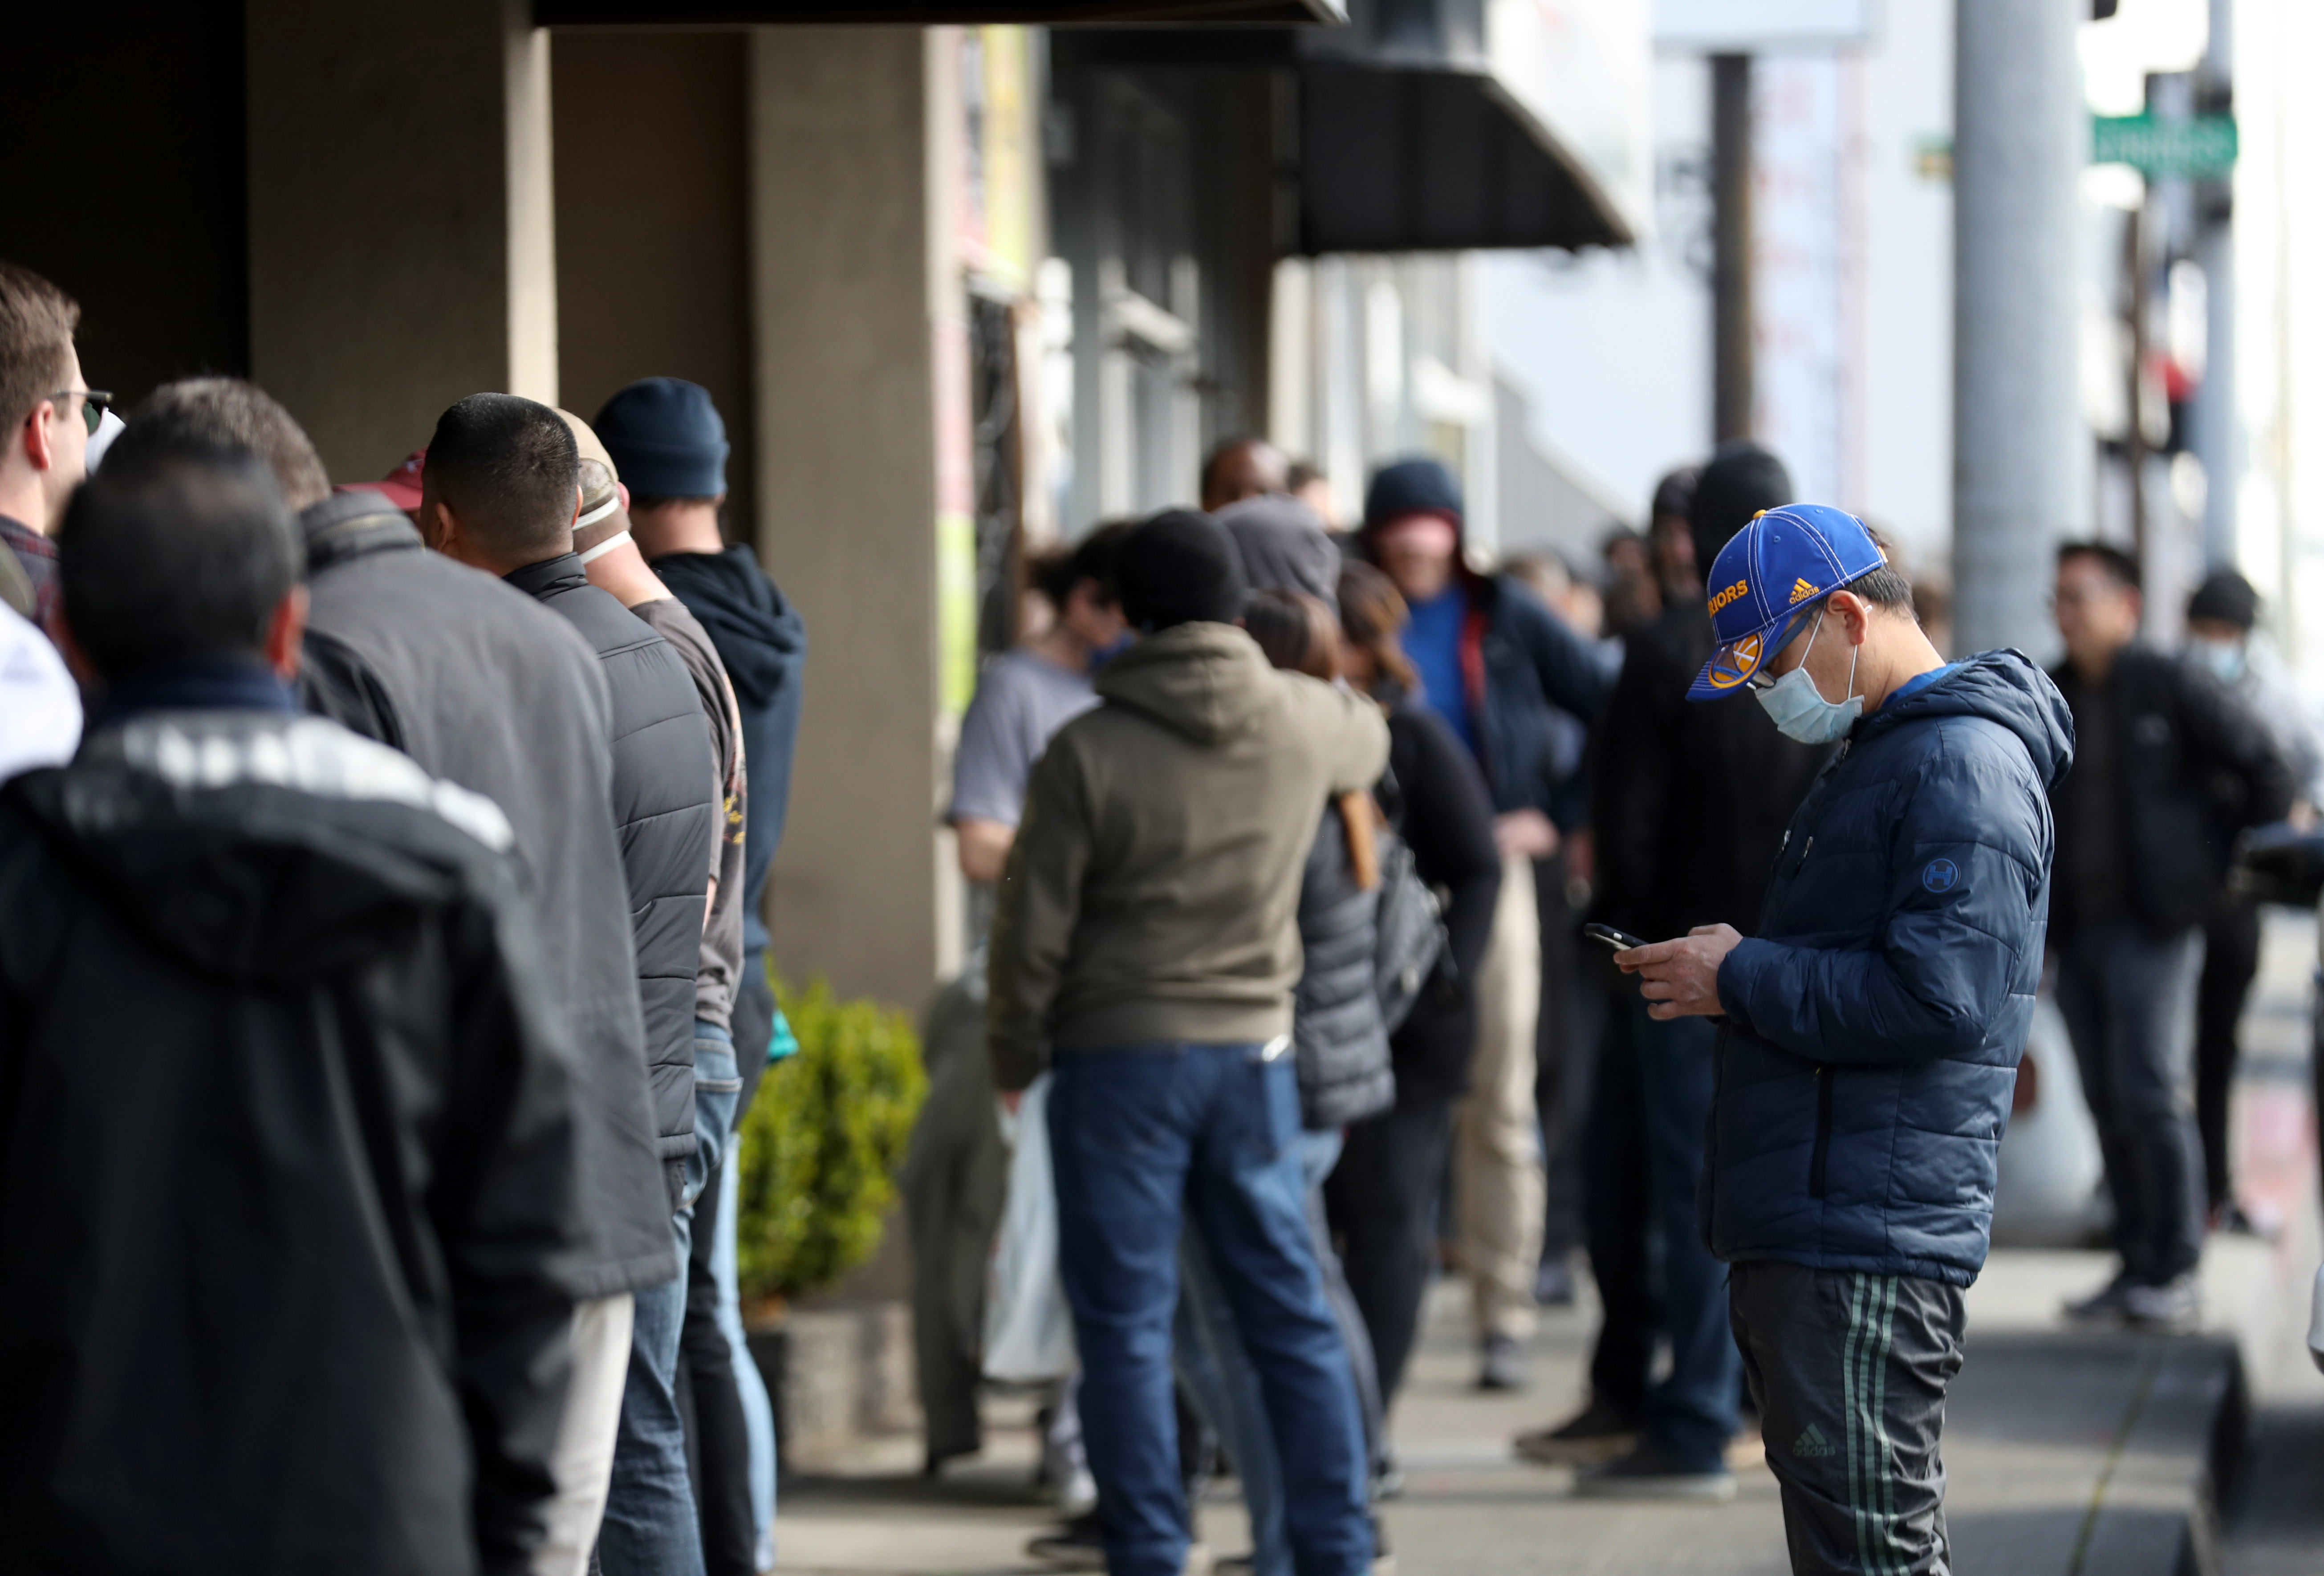 People wait in line to purchase guns and ammunition at Peninsula Guns and Tactical on March 16, 2020 in San Bruno, California. (Justin Sullivan/Getty Images)